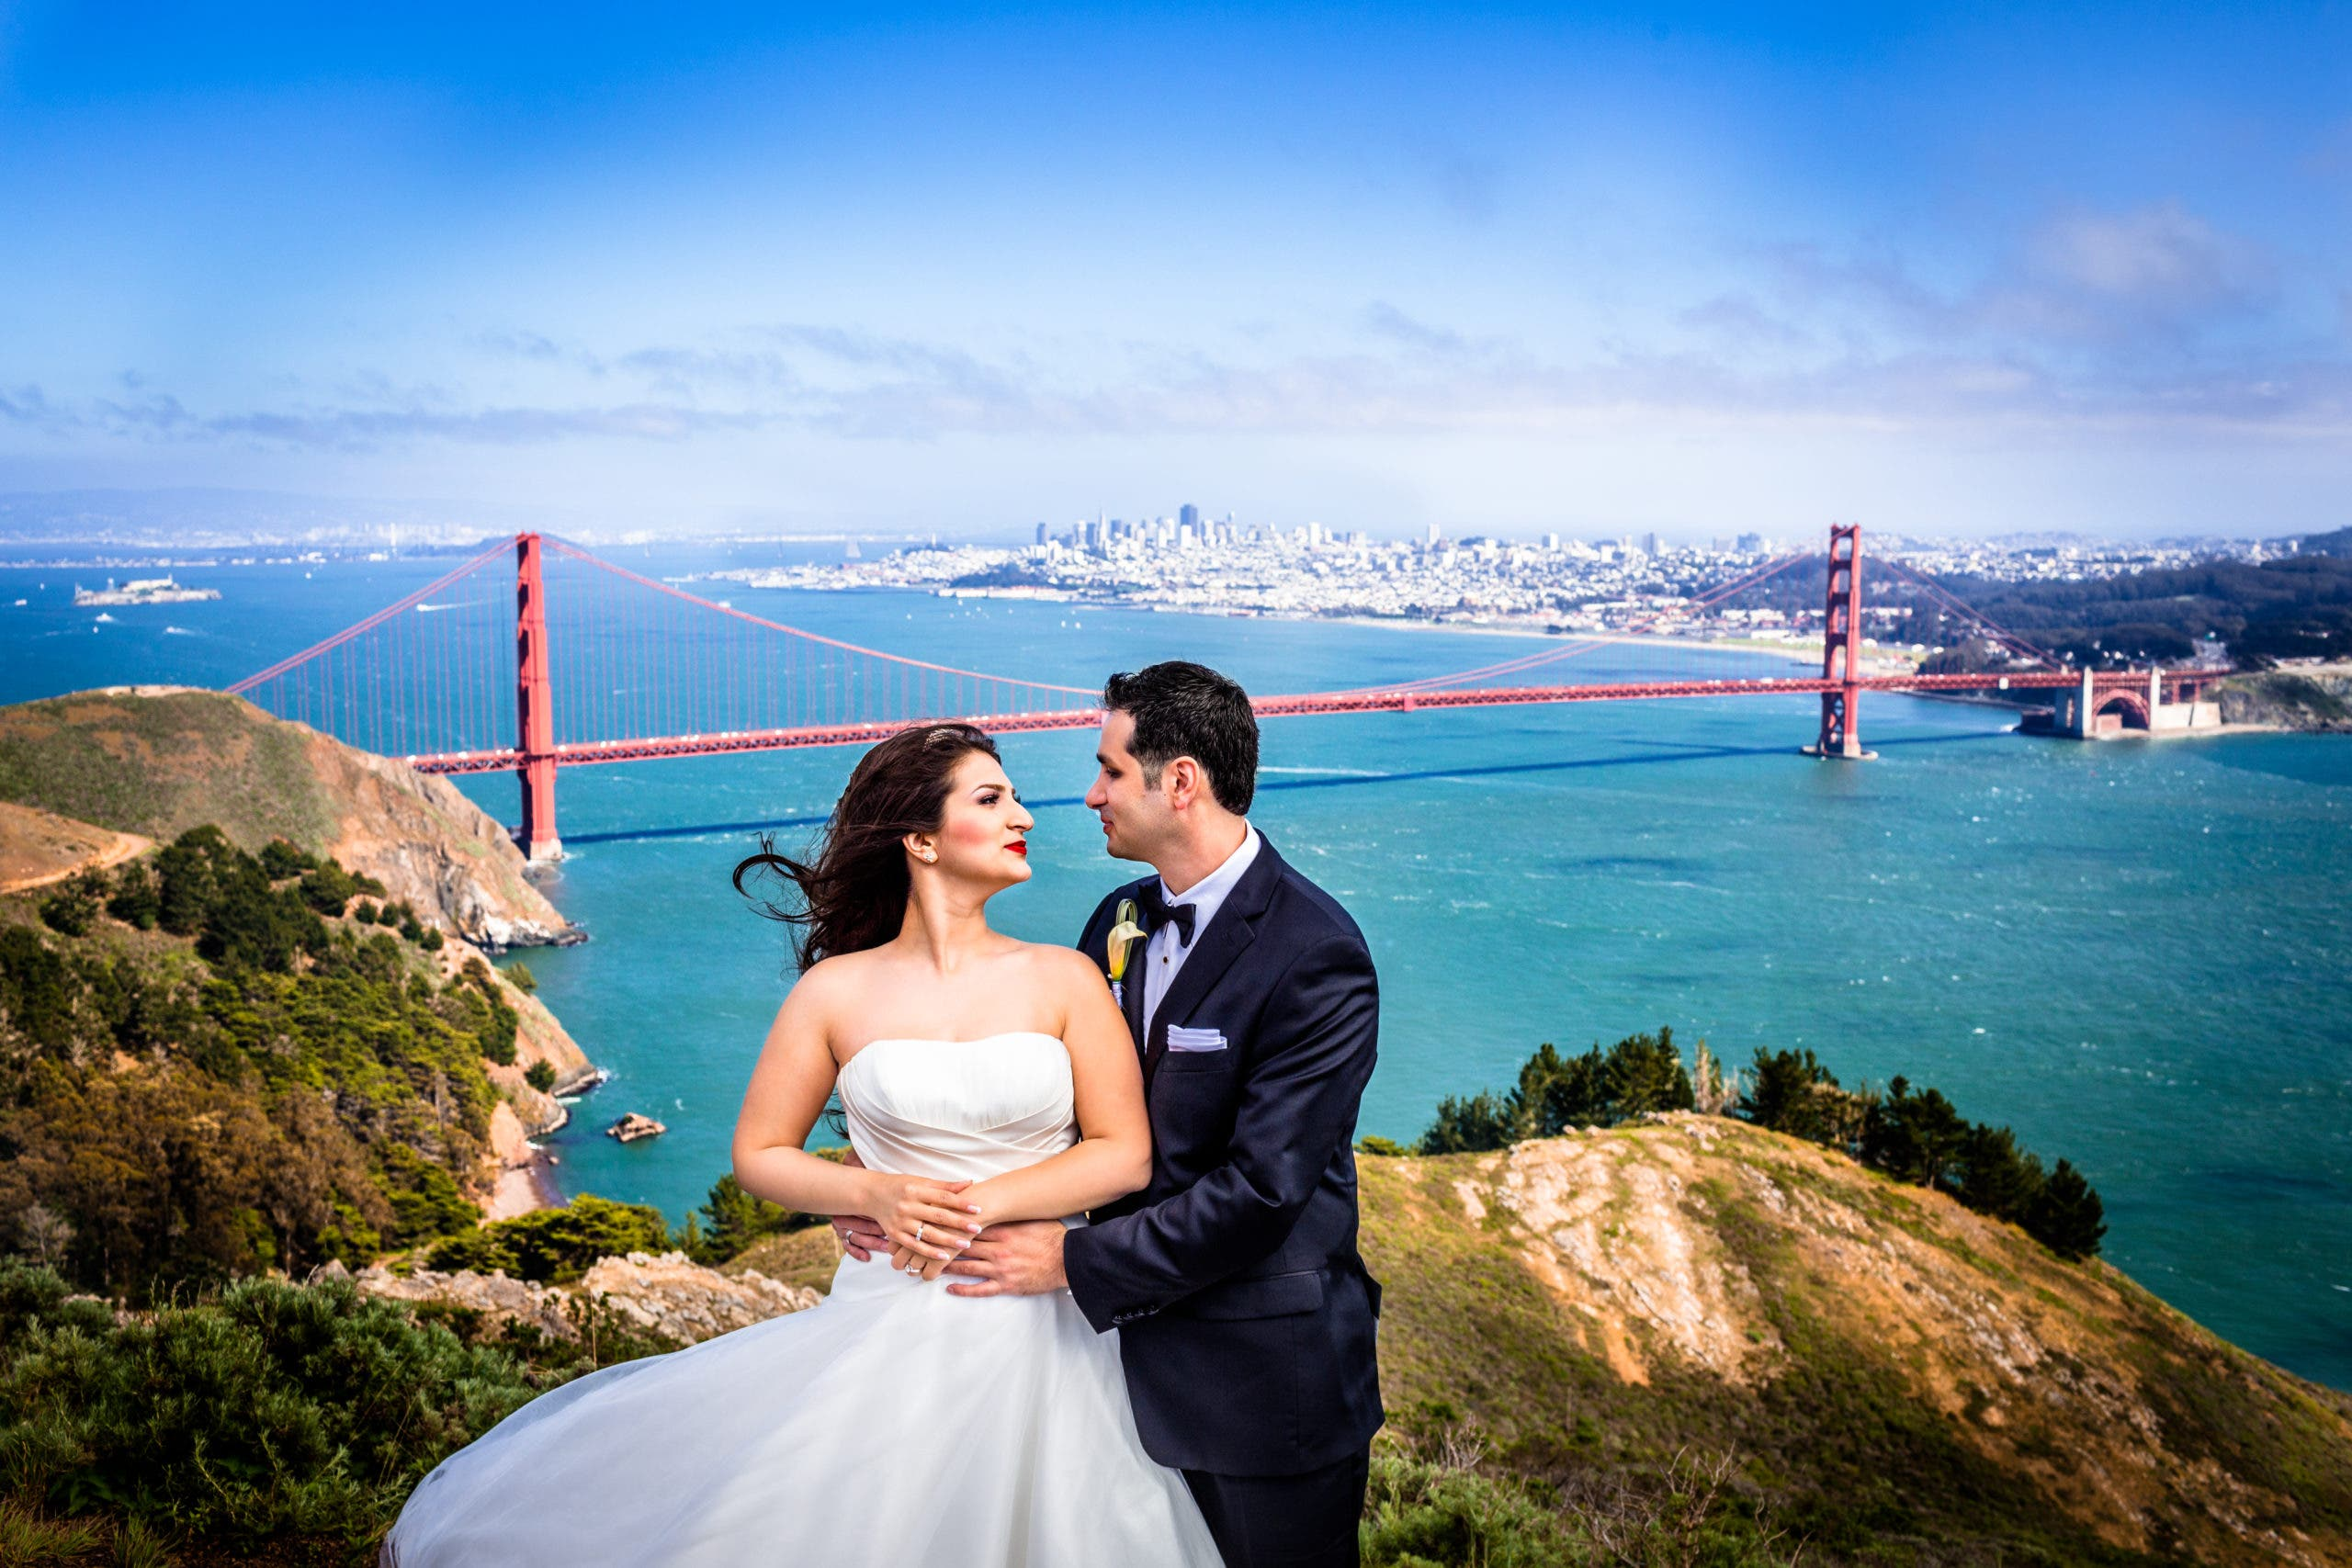 7 Perfect Examples of Inspiring Wedding Photography